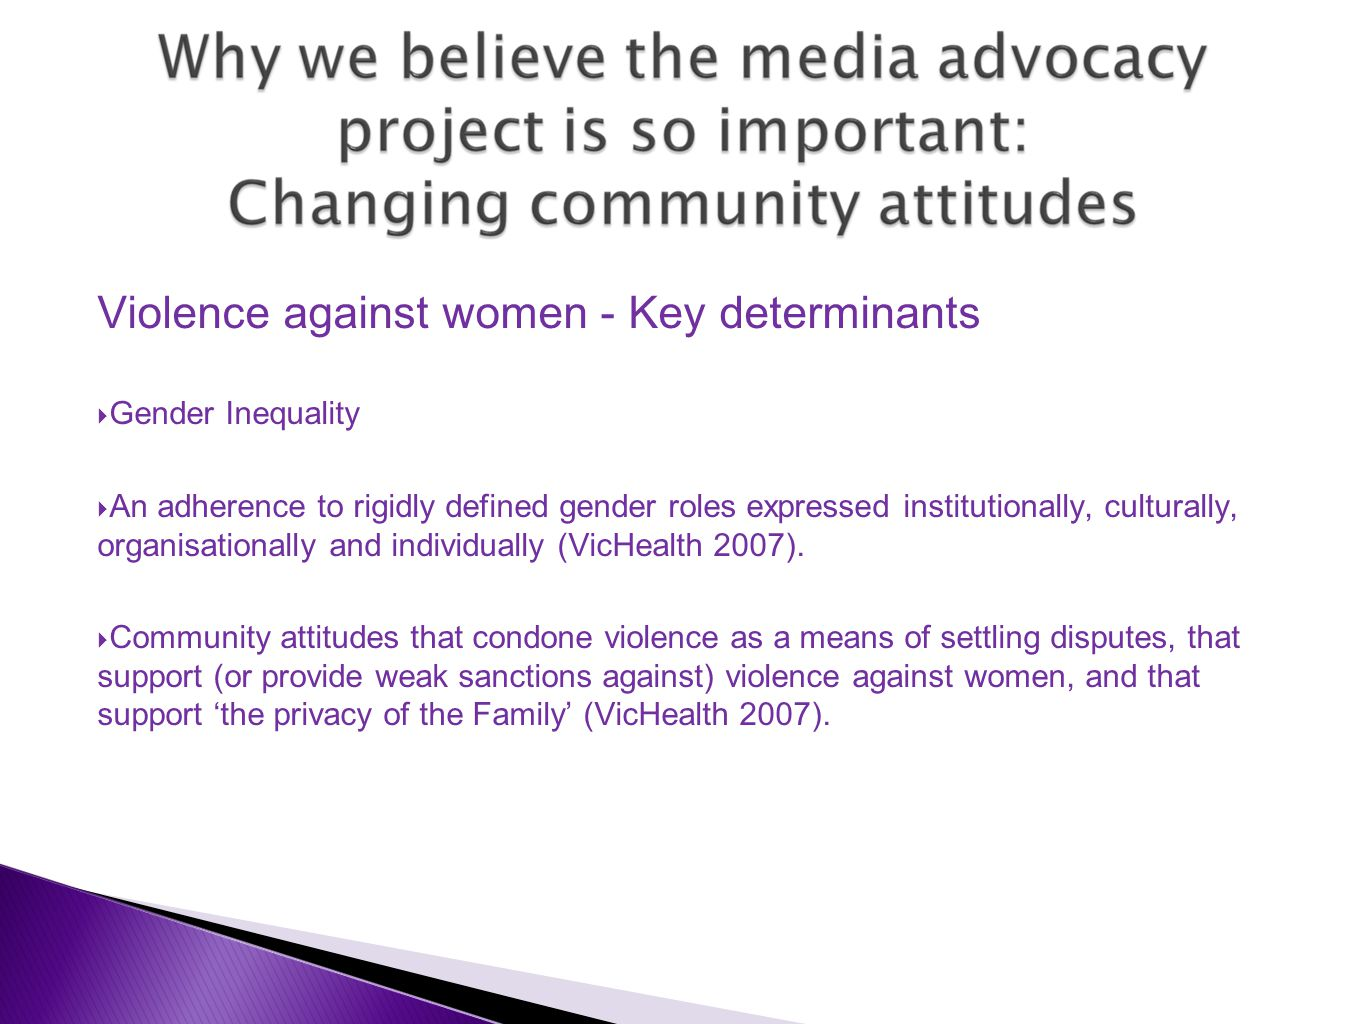  Providing women's perspective and lived experience  Women as advocates, rather than 'victims' – Giving voice to women's strength  Challenging stereotypes by providing diverse voices  Passionate, authentic and engaging  Making statistics real: Real women, real experience research (not just research findings or statistics) – Connecting with people to change attitudes  Local or comparative (matching up speakers with audience)